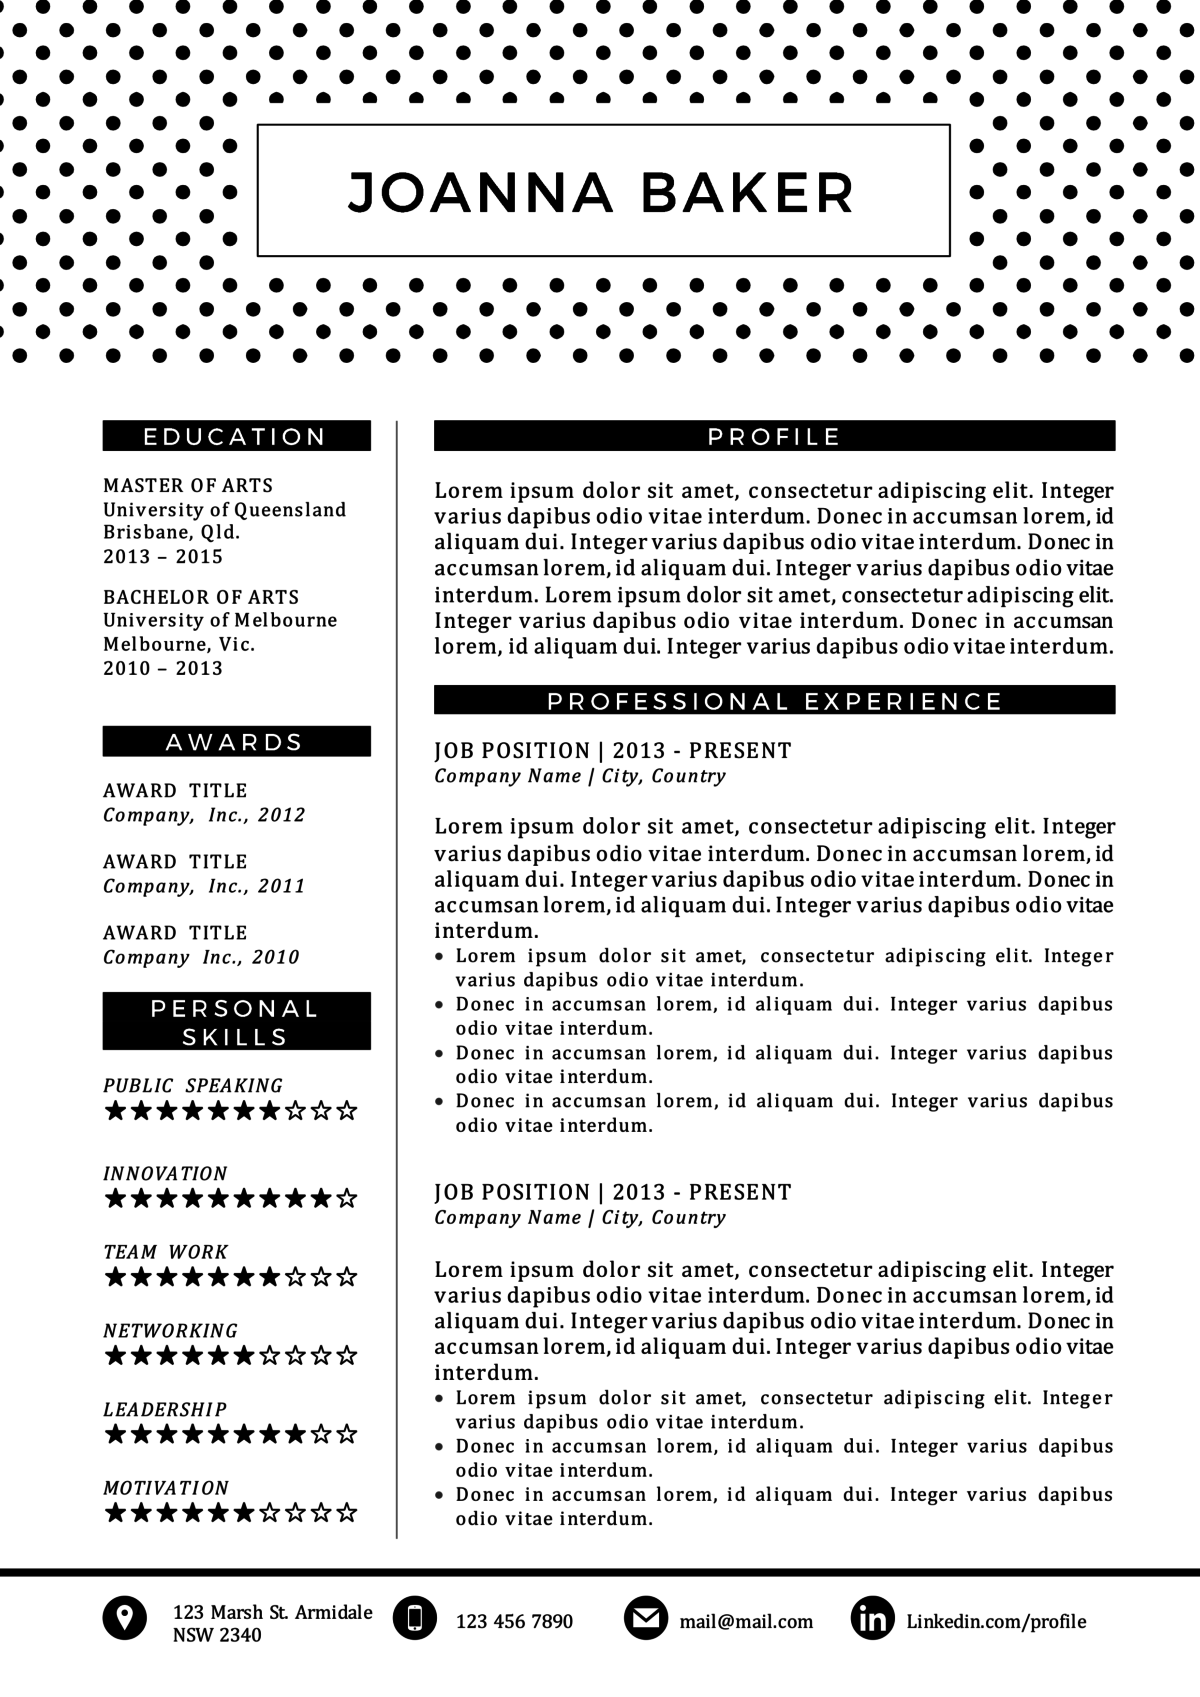 Polka Dotted Black And White Resume Template  Baker Resume